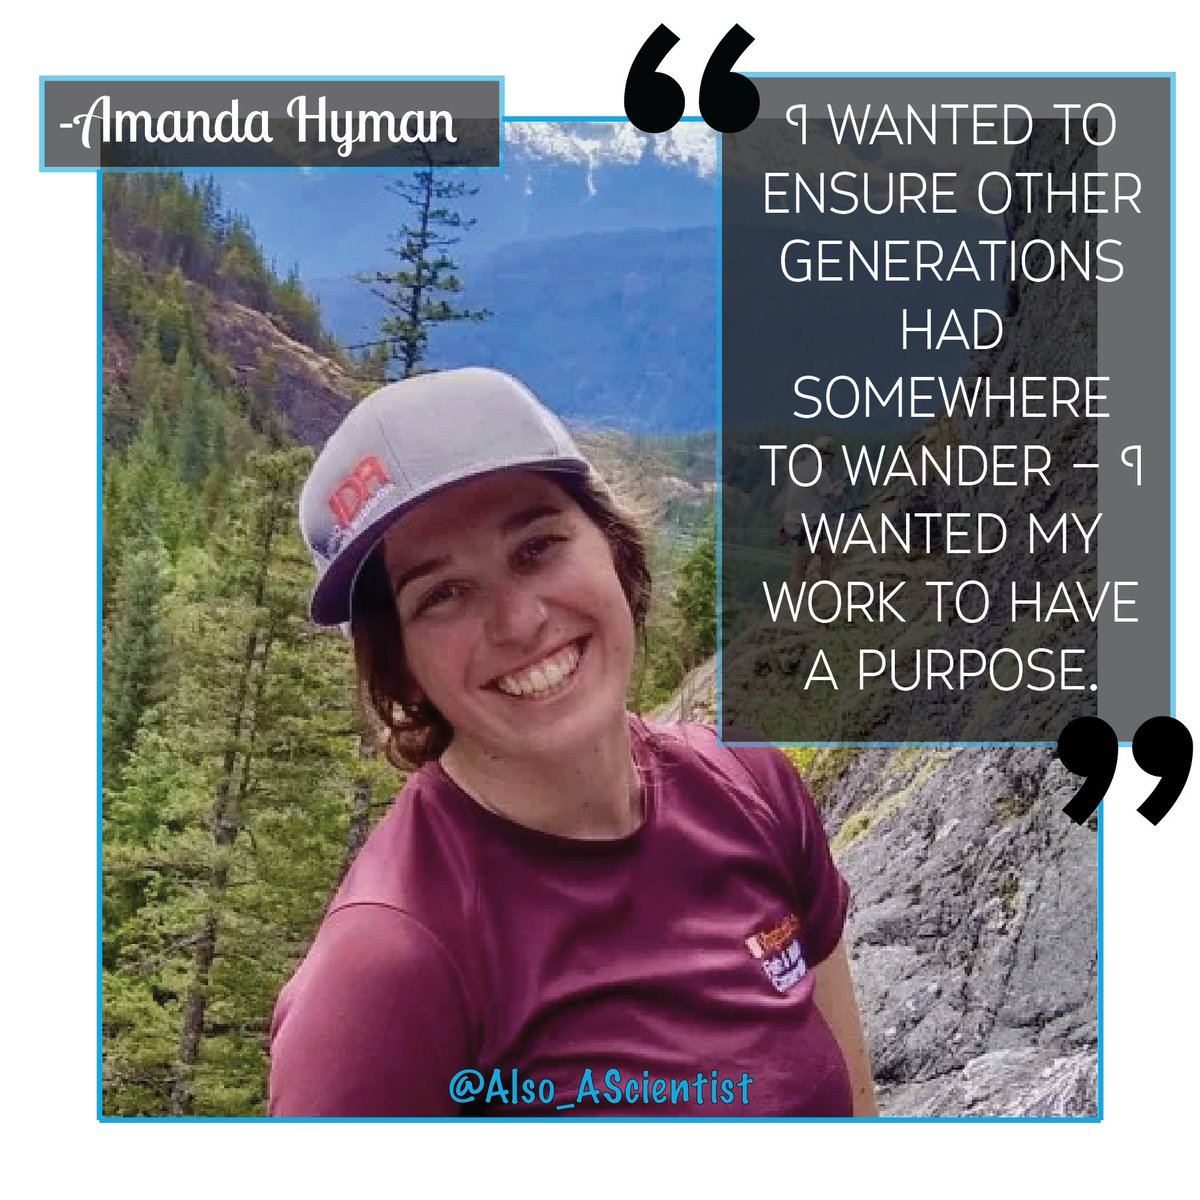 Meet @amandaahyman, whose love of the outdoors led her to study how to ensure stable social-ecological systems & optimize conservation budget use. Its perhaps unsurprising that Amanda loves rock-climbing in her free time! #WomenInSTEM #QueerInSTEM ✨ow.ly/VUyj50ytkS8✨